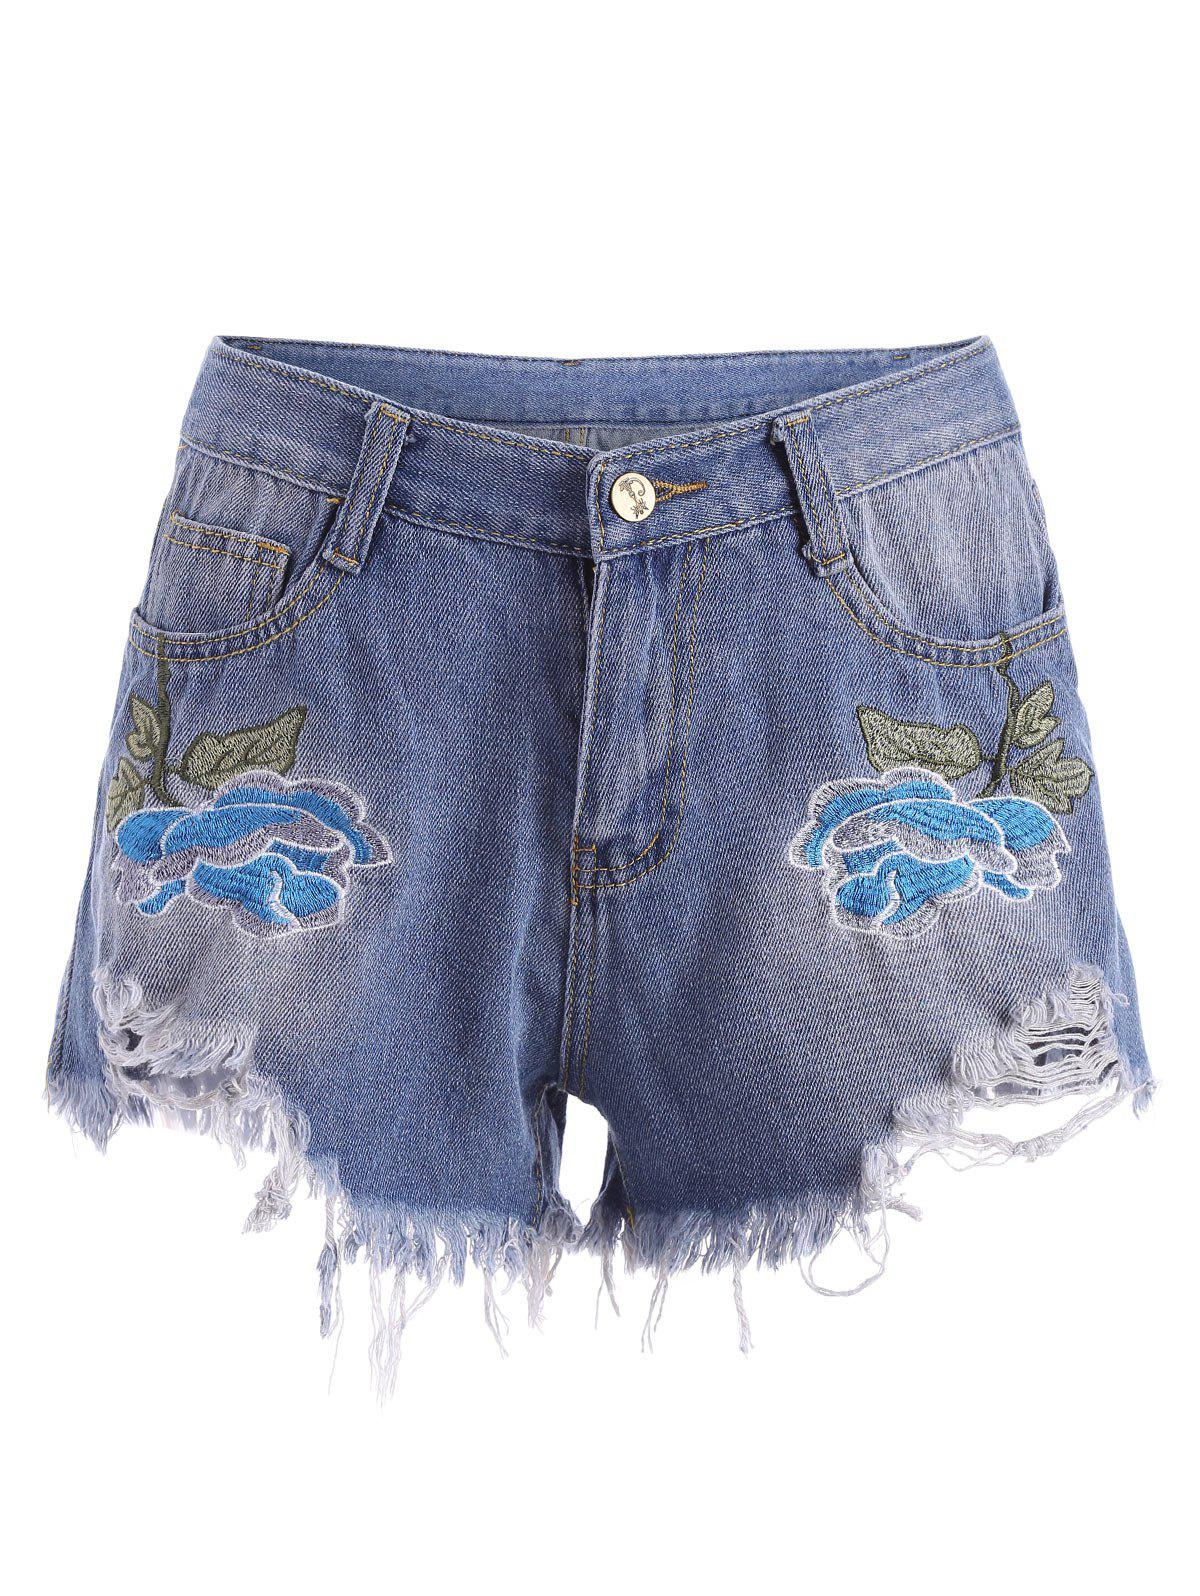 Embroidered Ripped Denim Mini Shorts - BLUE M